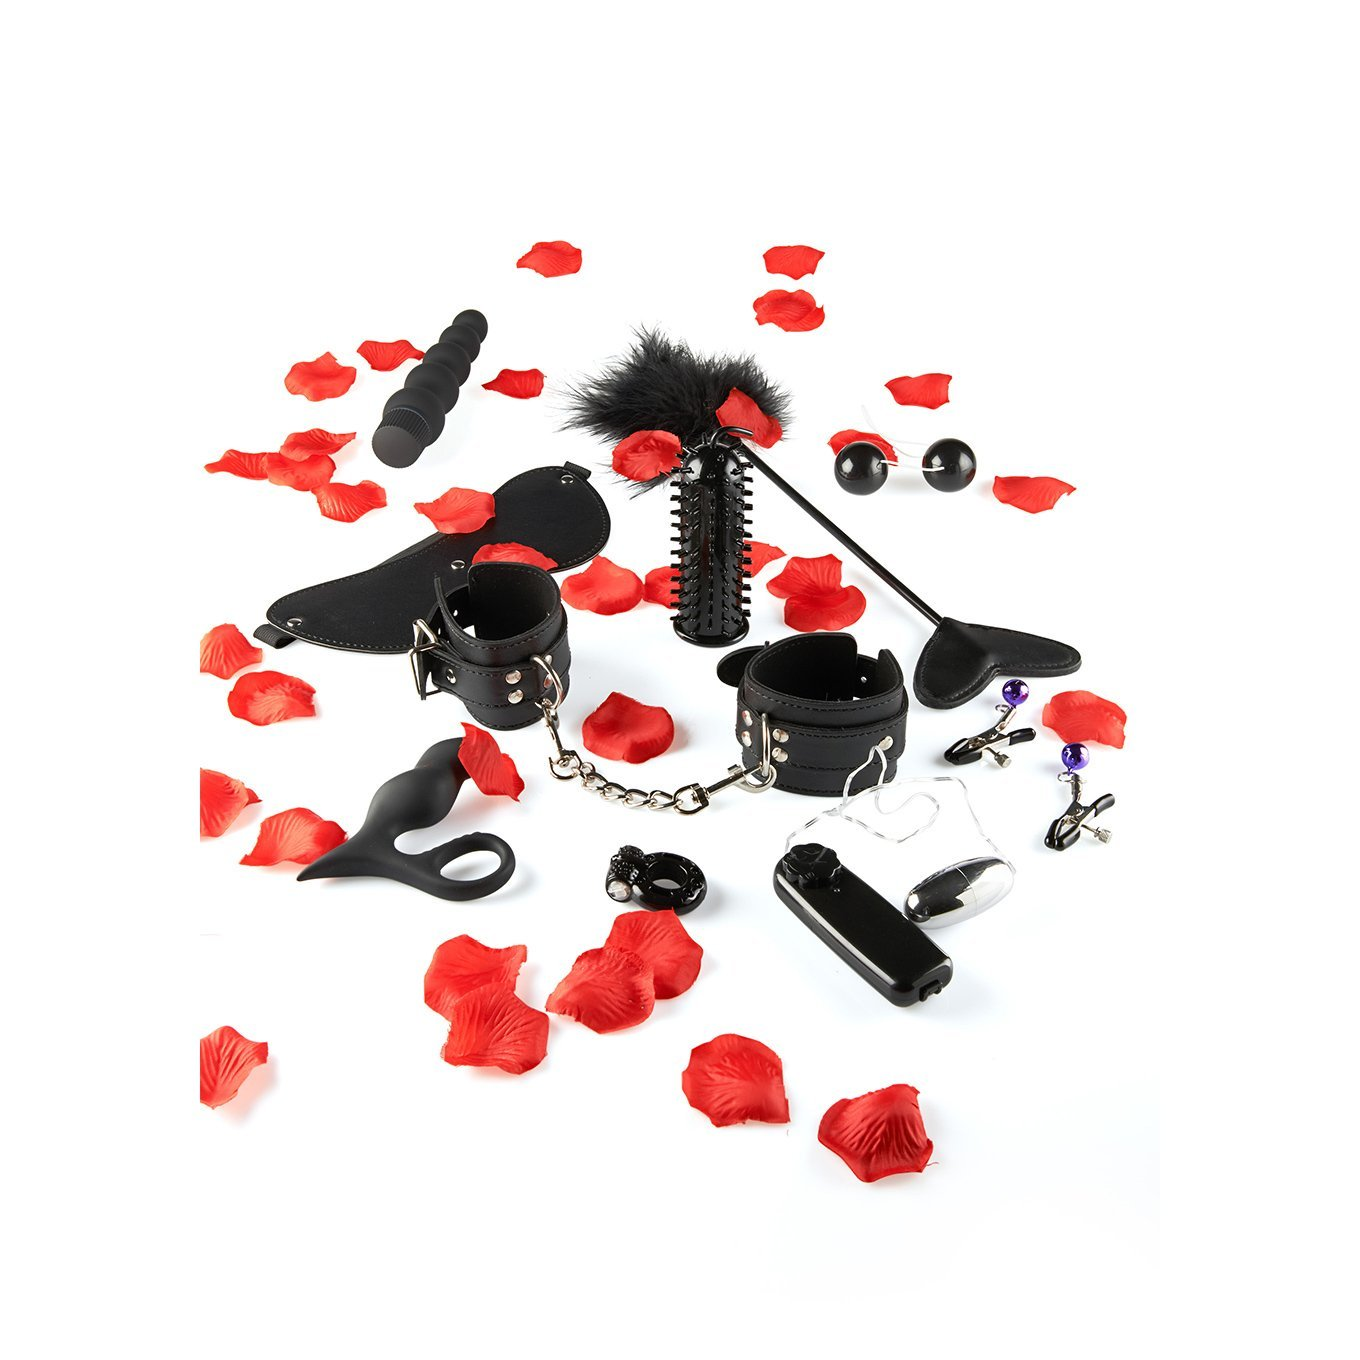 ToyJoy - Lovetoy Starter Kit BDSM Set Singapore